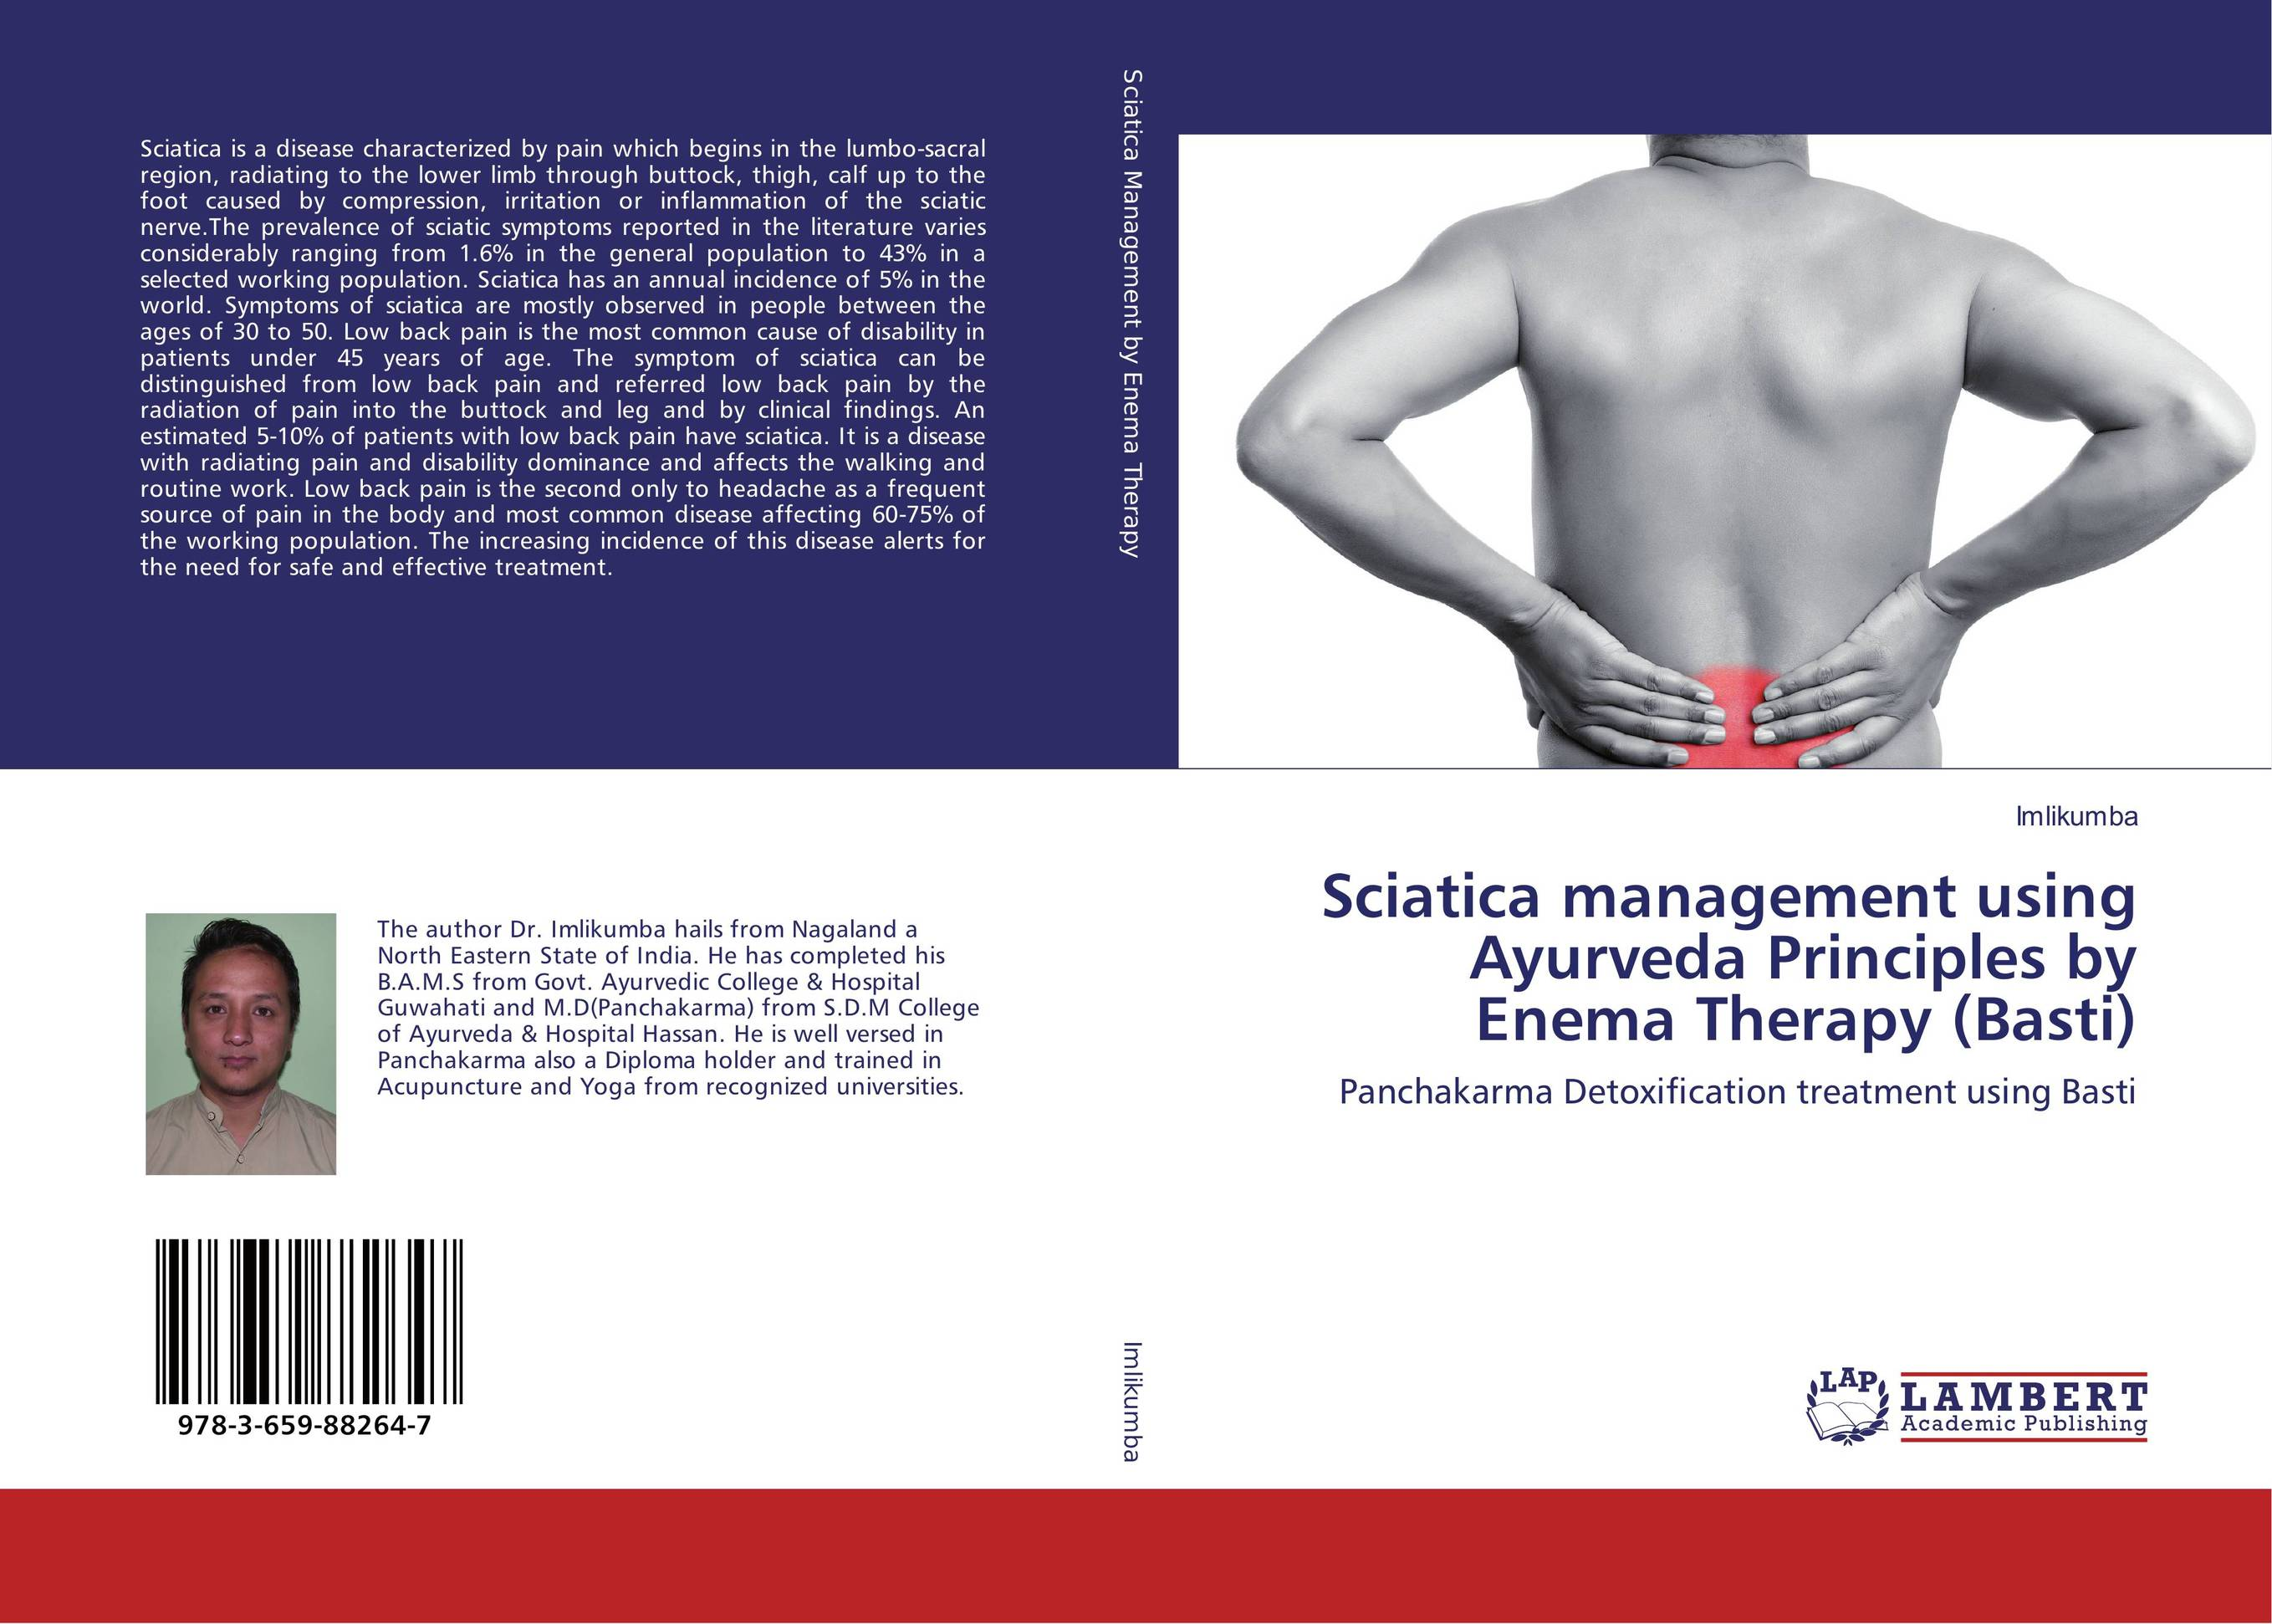 Sciatica management using Ayurveda Principles by Enema Therapy (Basti) benign enlargement of prostate gland bep in ayurveda